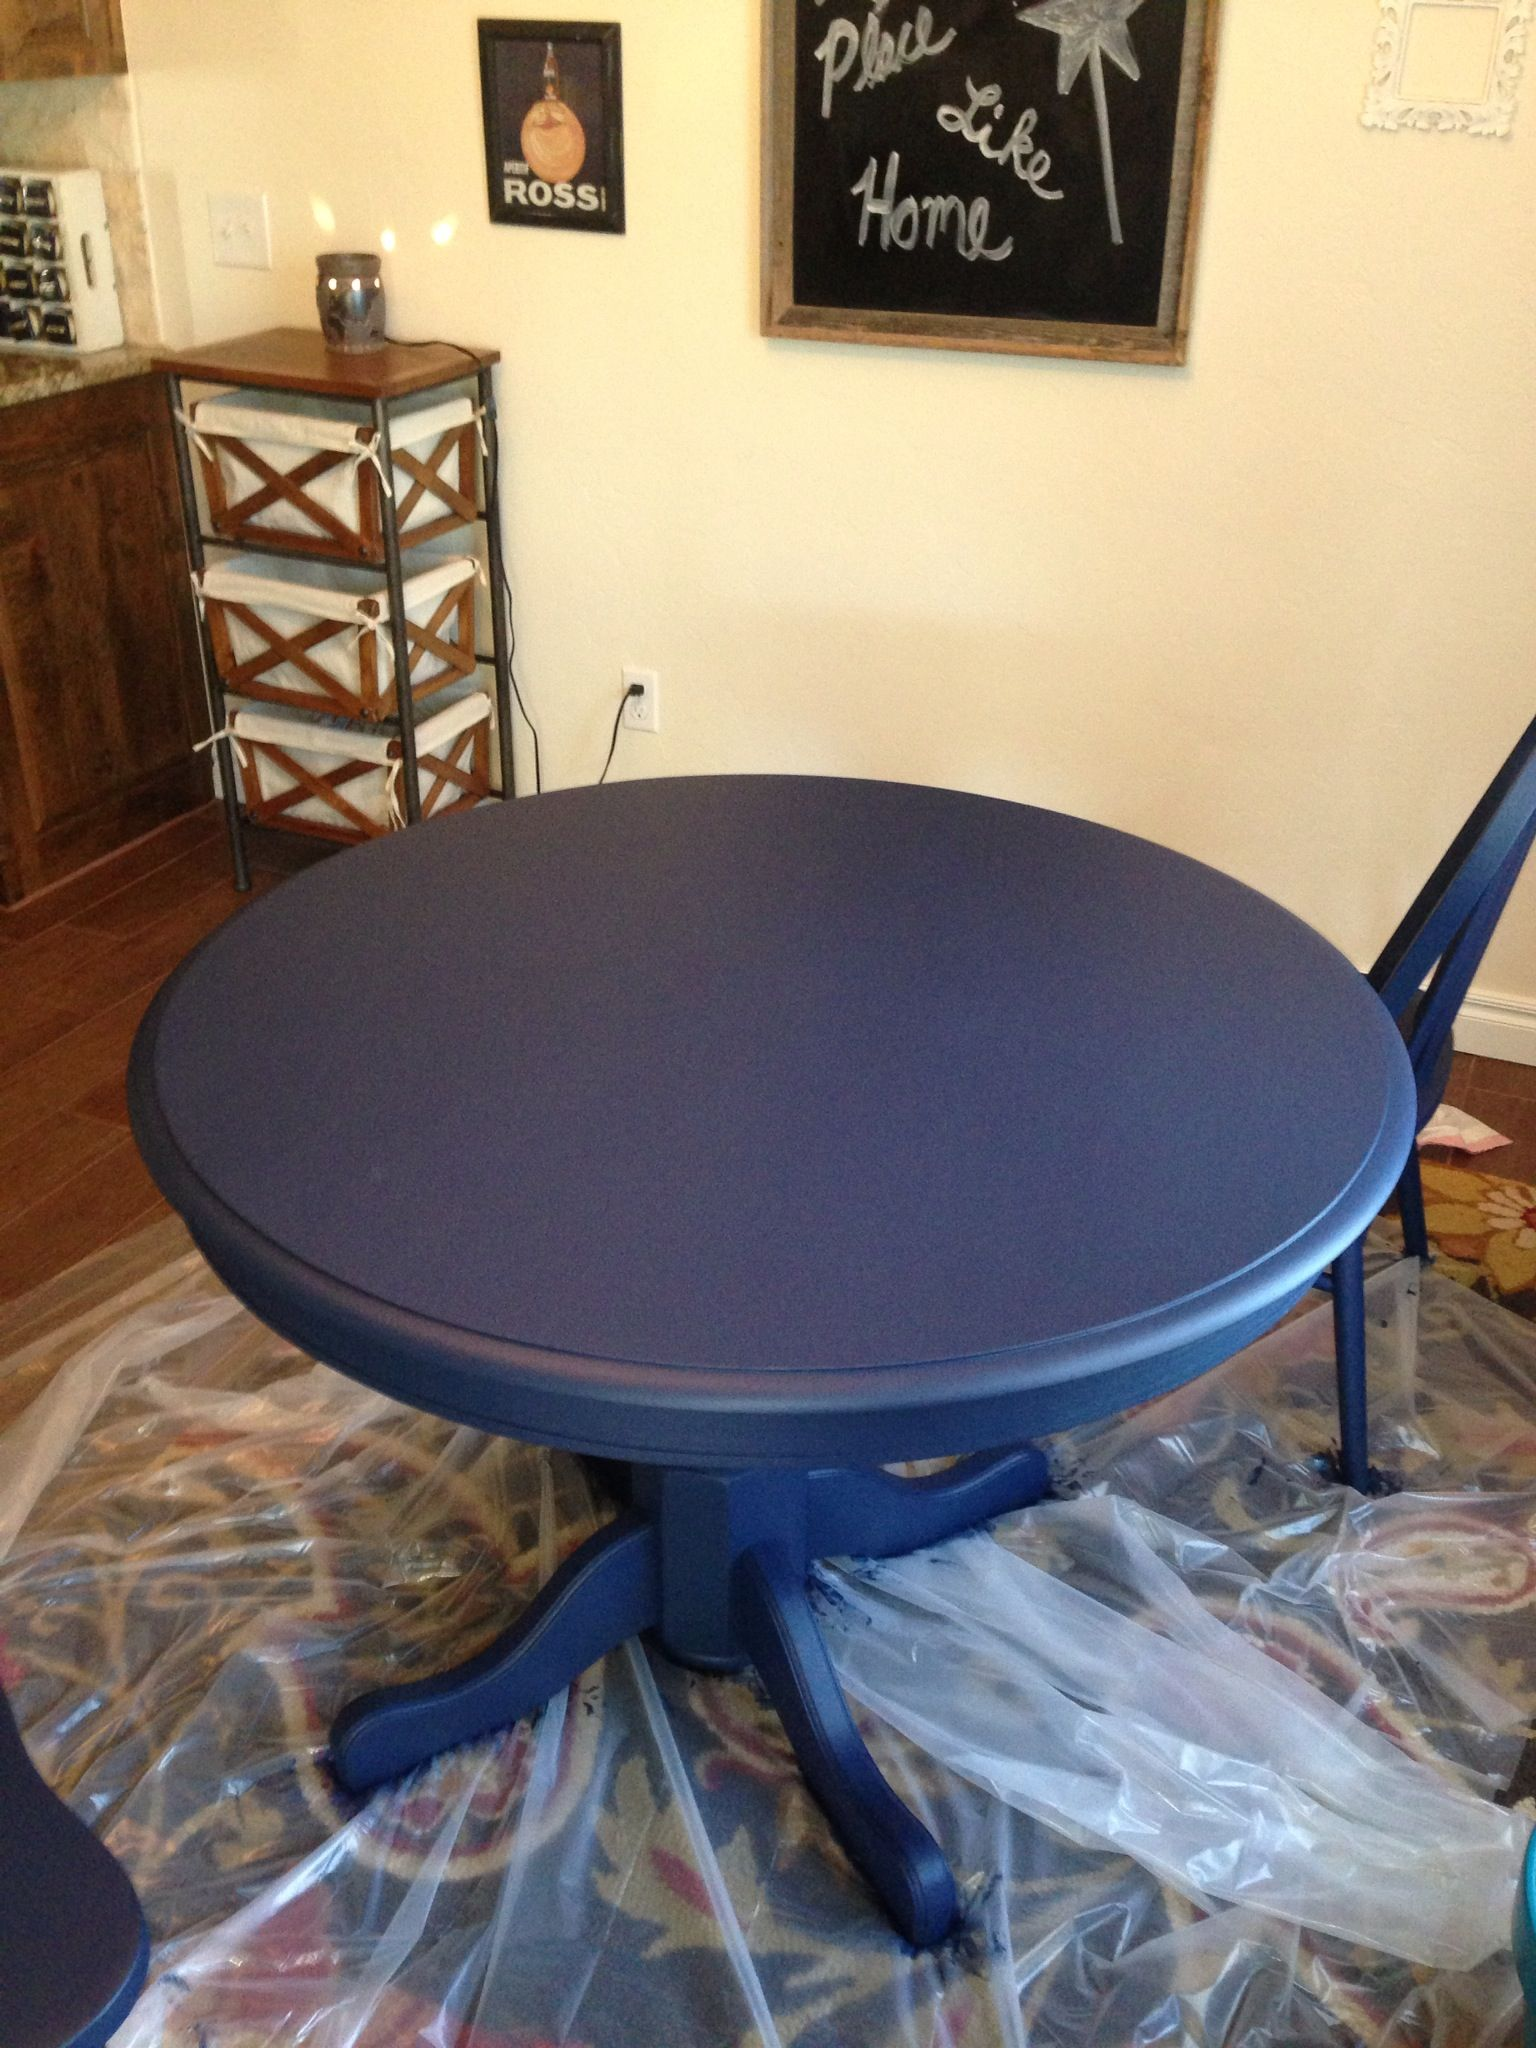 Pin By Katie Biswell On Likes Kitchen Table Makeover Painted